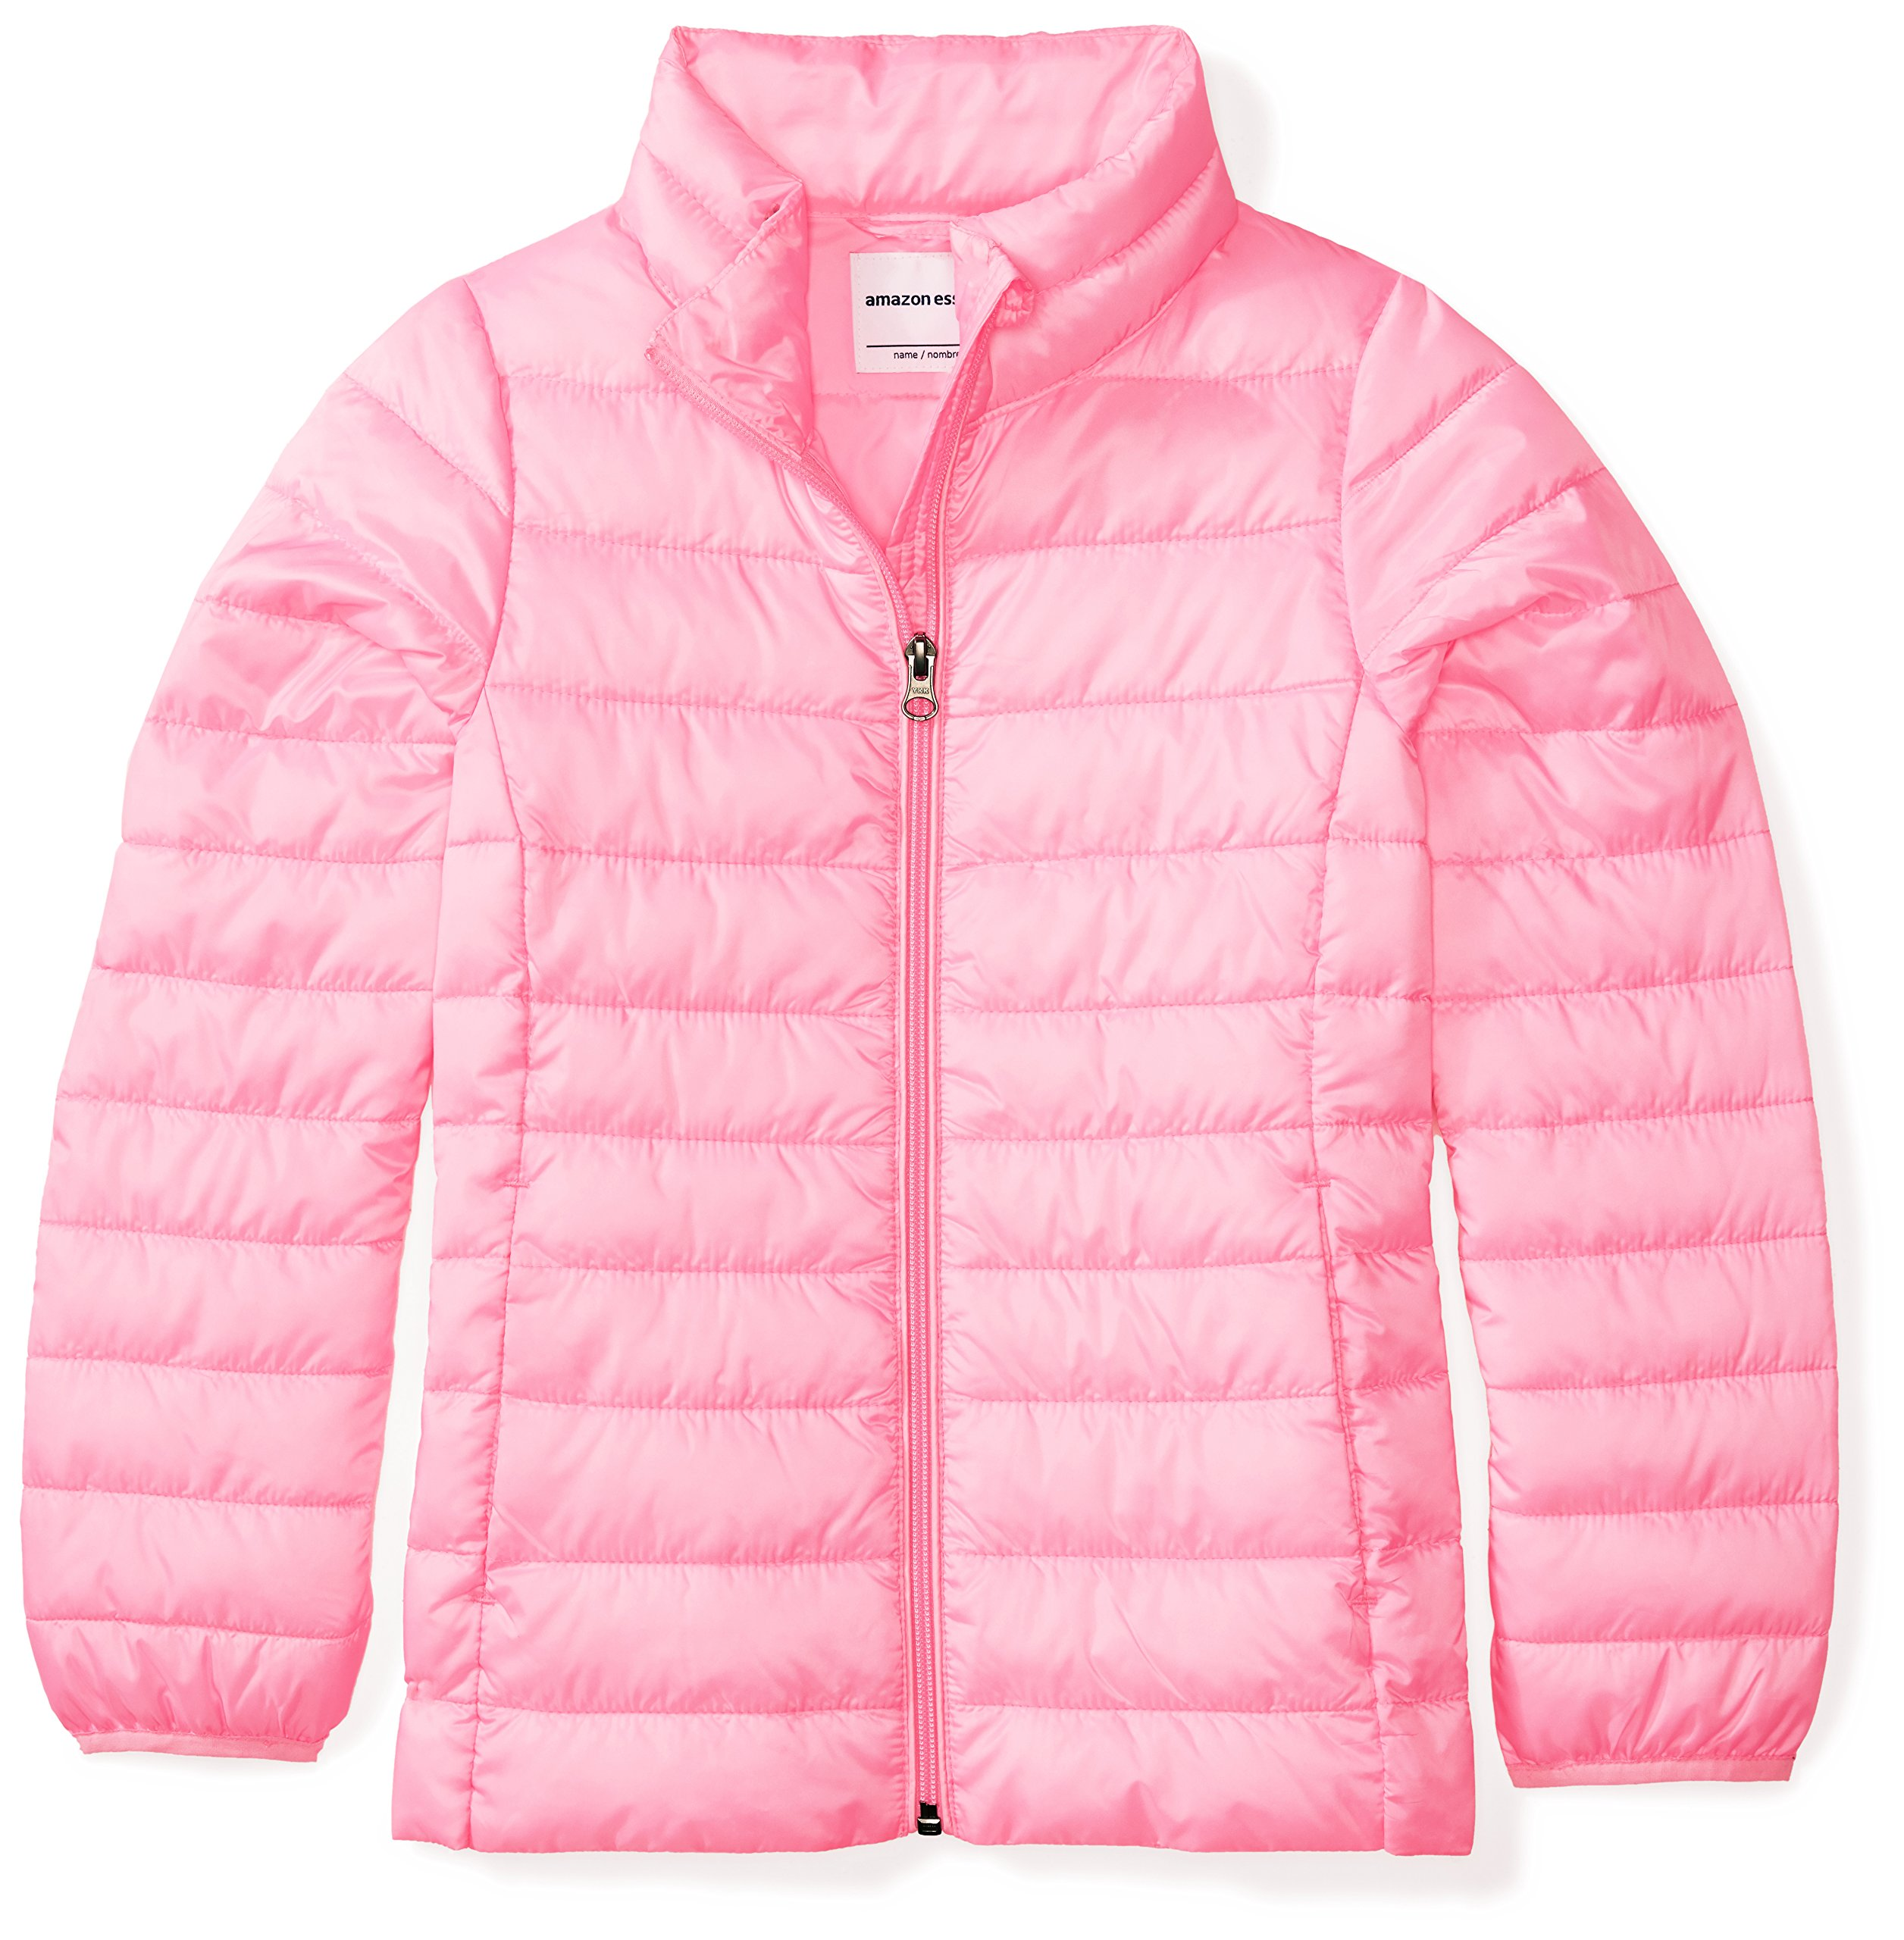 Amazon Essentials Girls' Lightweight Water-Resistant Packable Puffer Jacket, Neon Flamingo Pink, Medium by Amazon Essentials